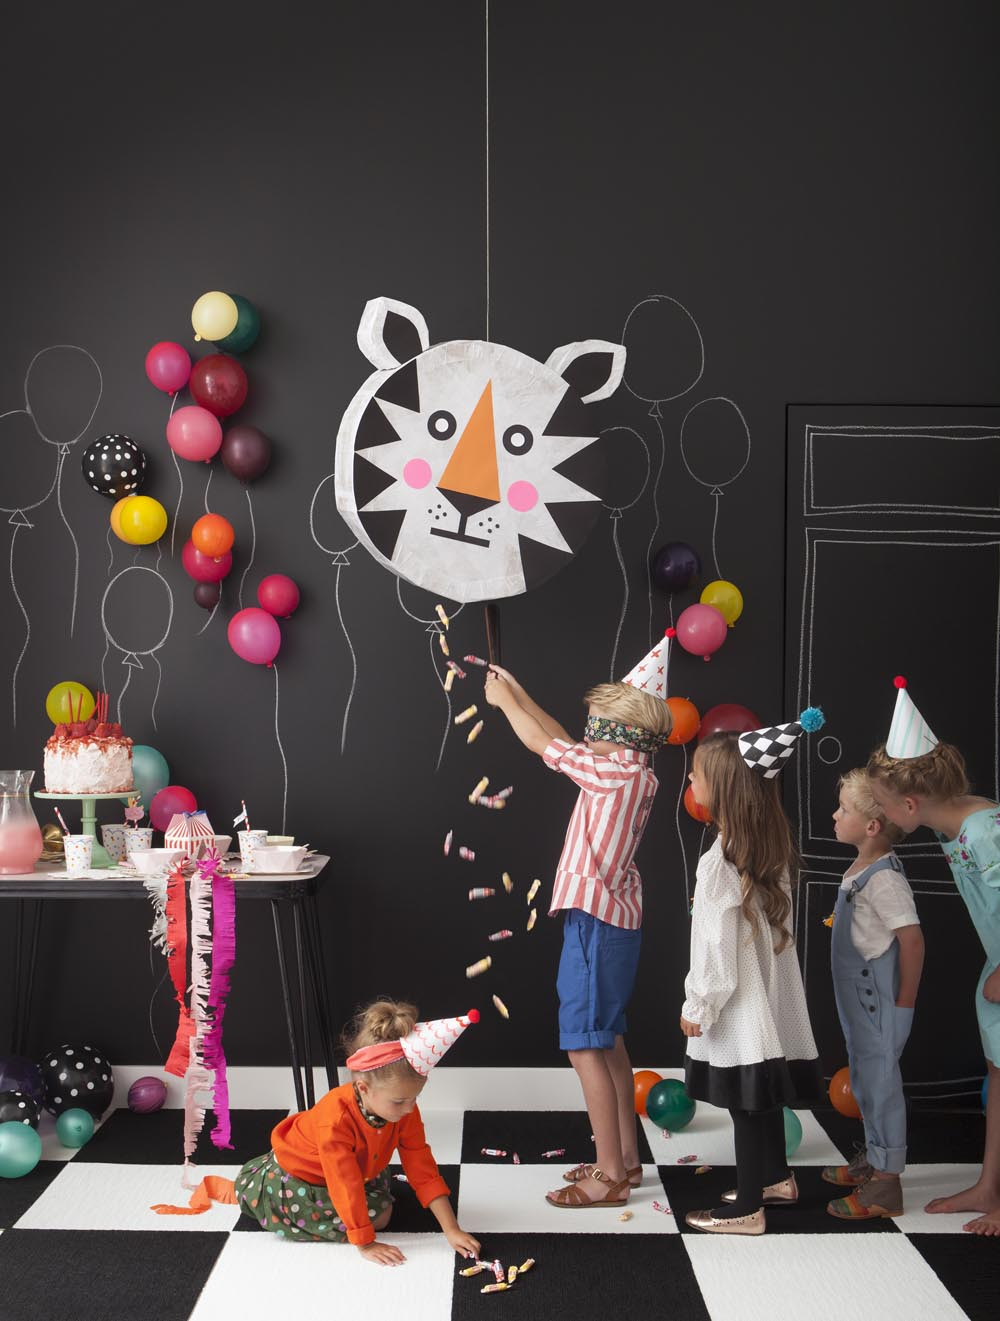 Kids craft & party via PLAYFUL